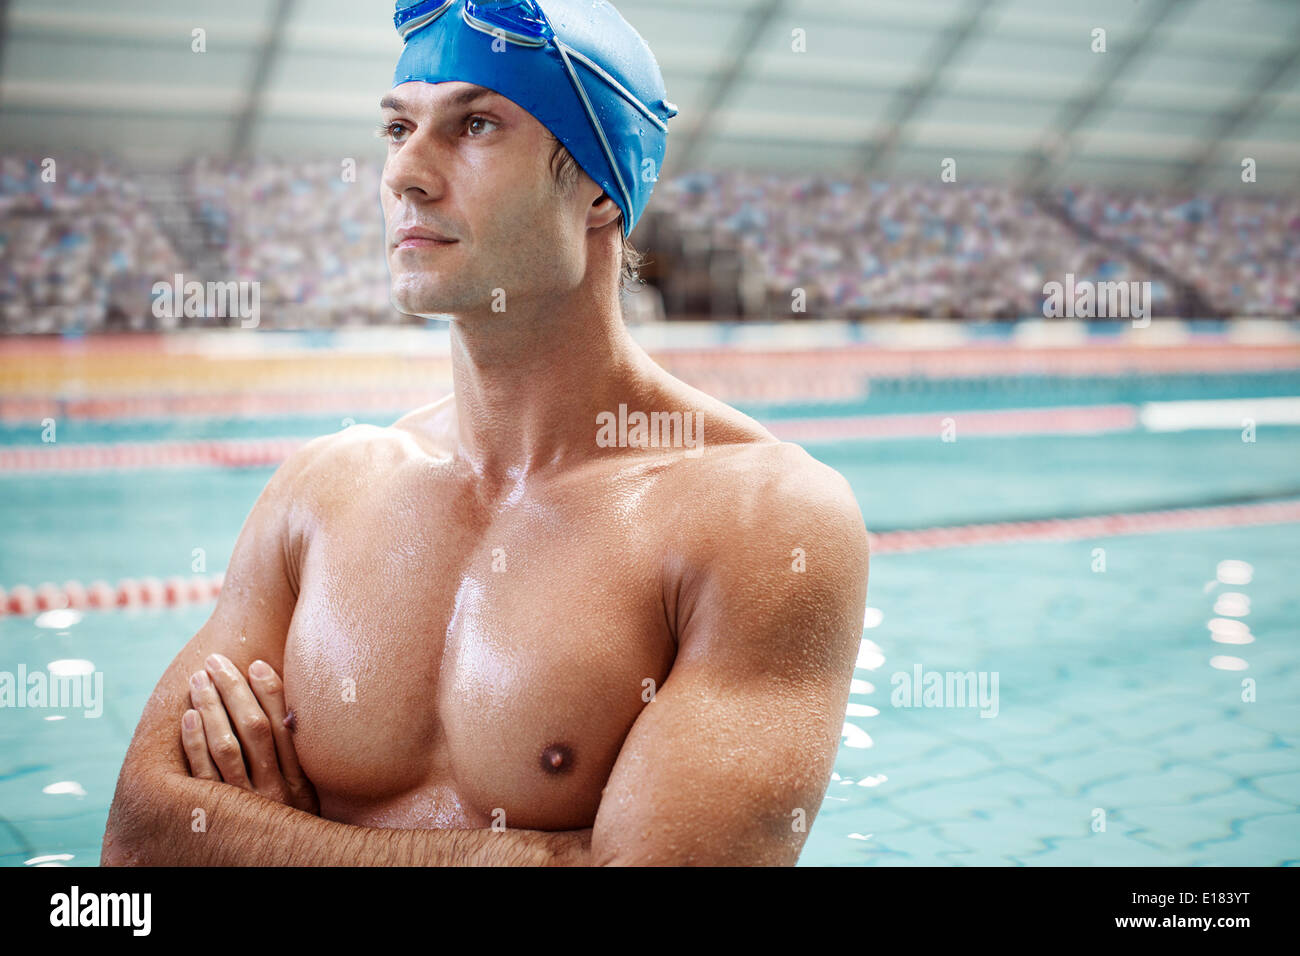 Serious swimmer standing poolside - Stock Image